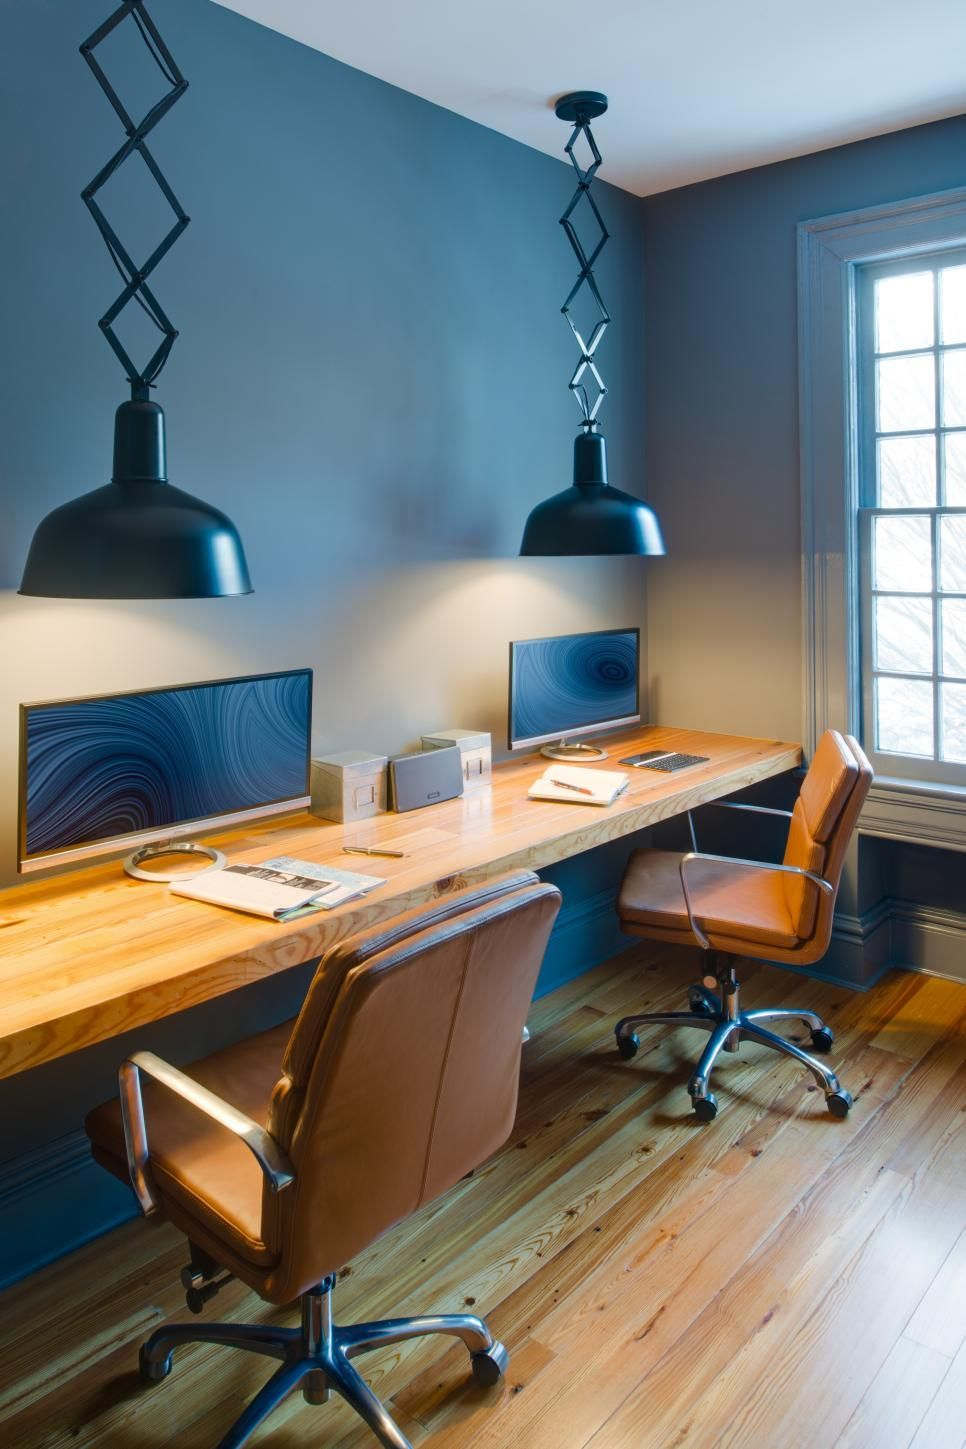 21 ultimate list of diy computer desk ideas with plans hgtv